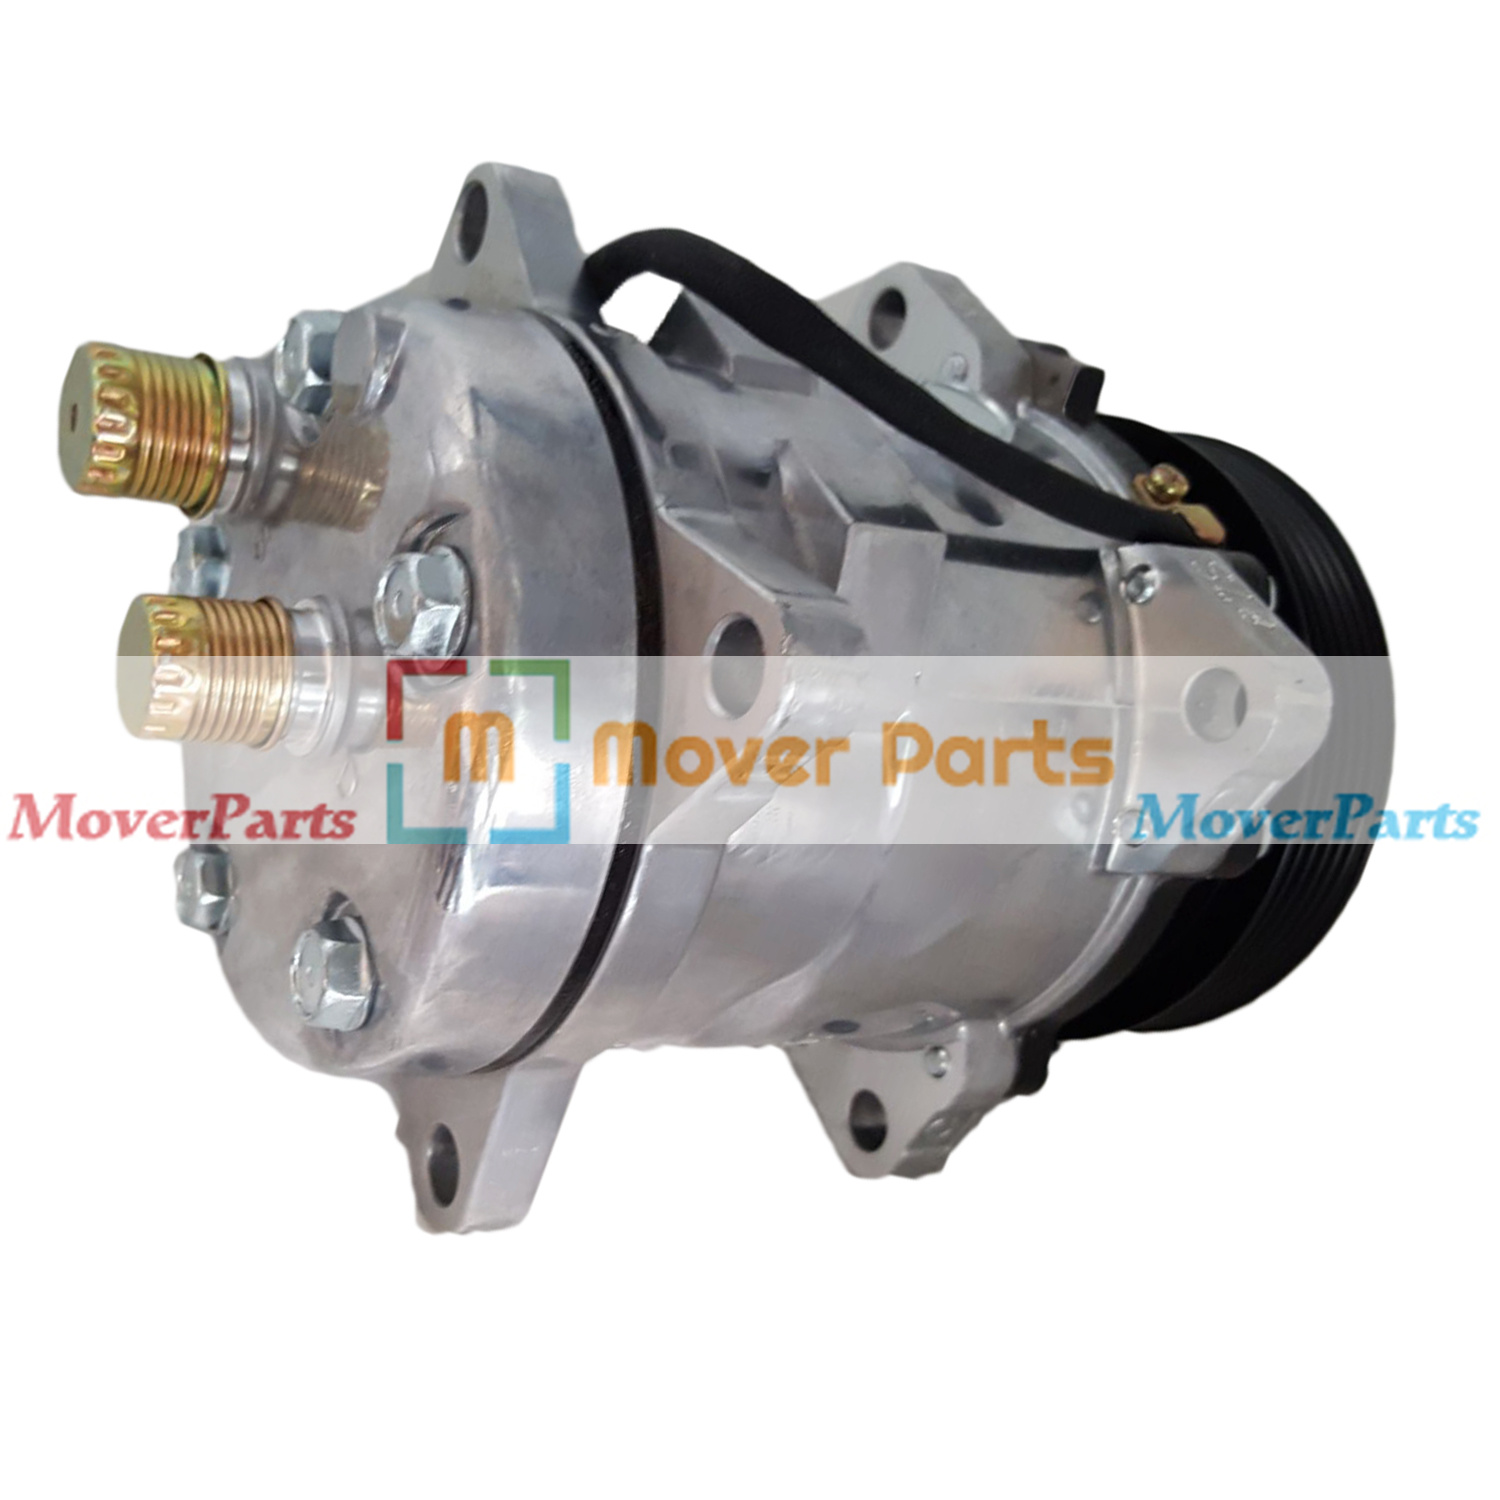 Details about Air Conditioning Compressor 7023585 for Bobcat Skid Steer  S550 S590 S595 S650